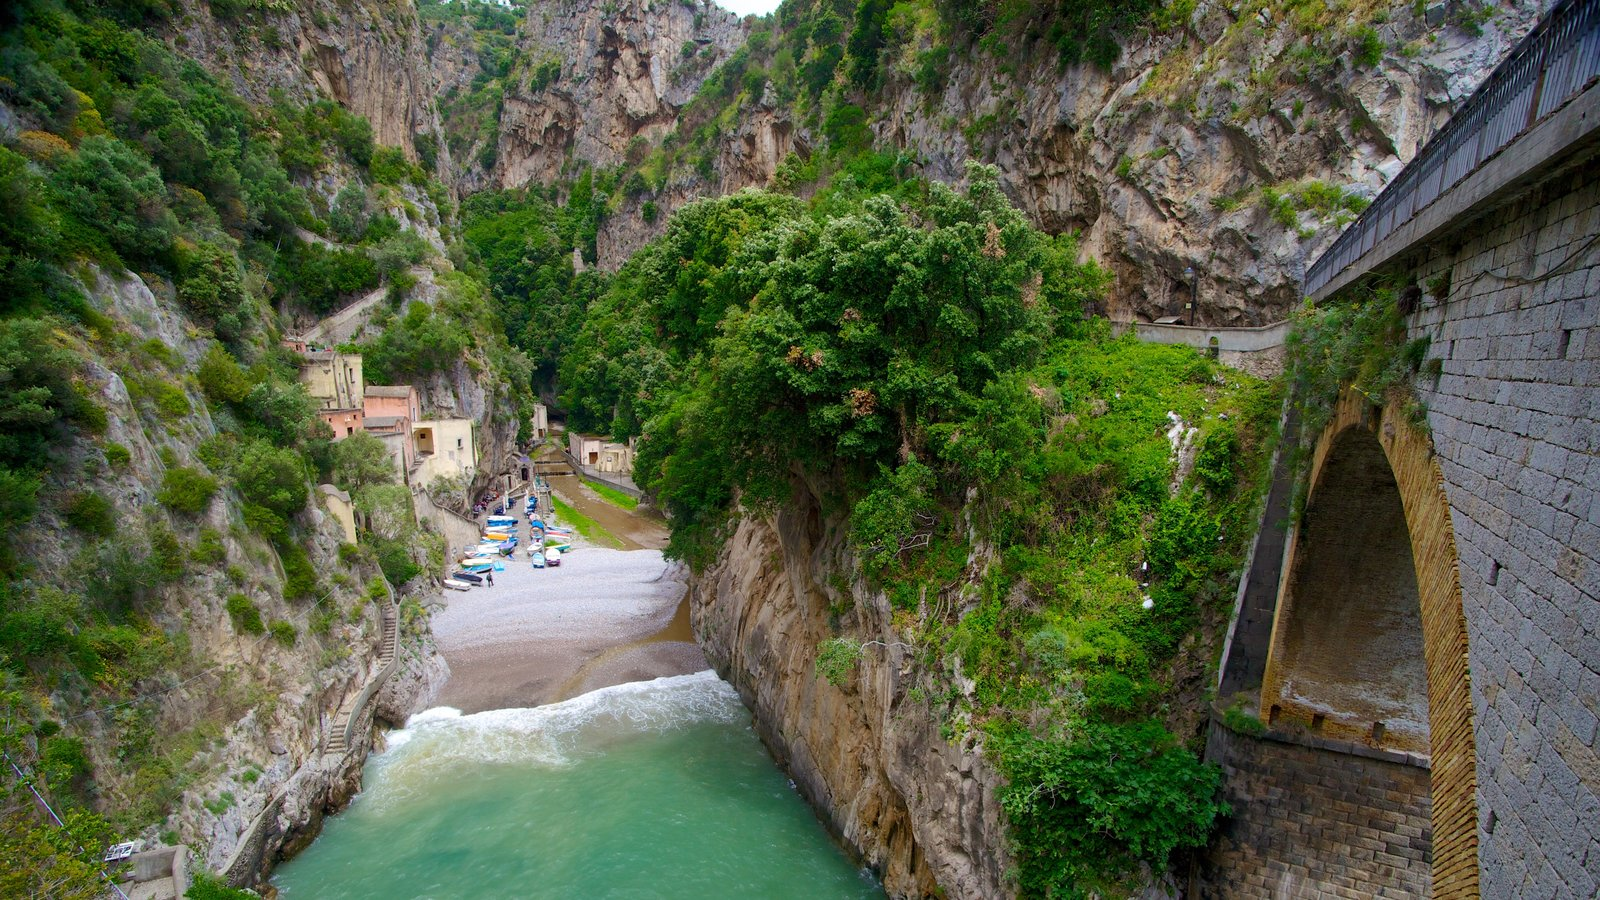 Fiordo di Furore showing a gorge or canyon, rugged coastline and general coastal views